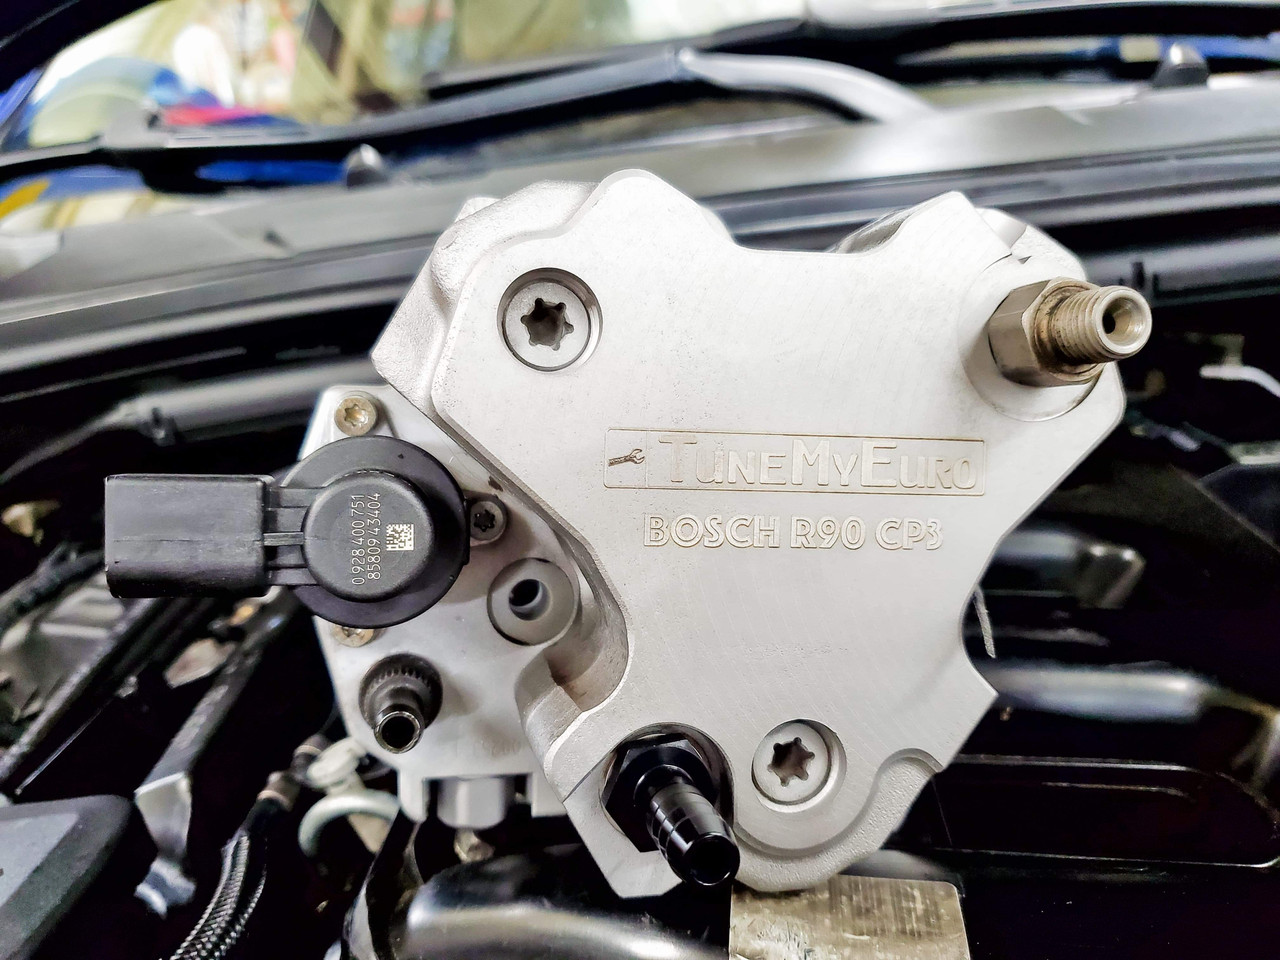 BMW R90 HPFP Pump for 335D and X5 35D (AAR2192)